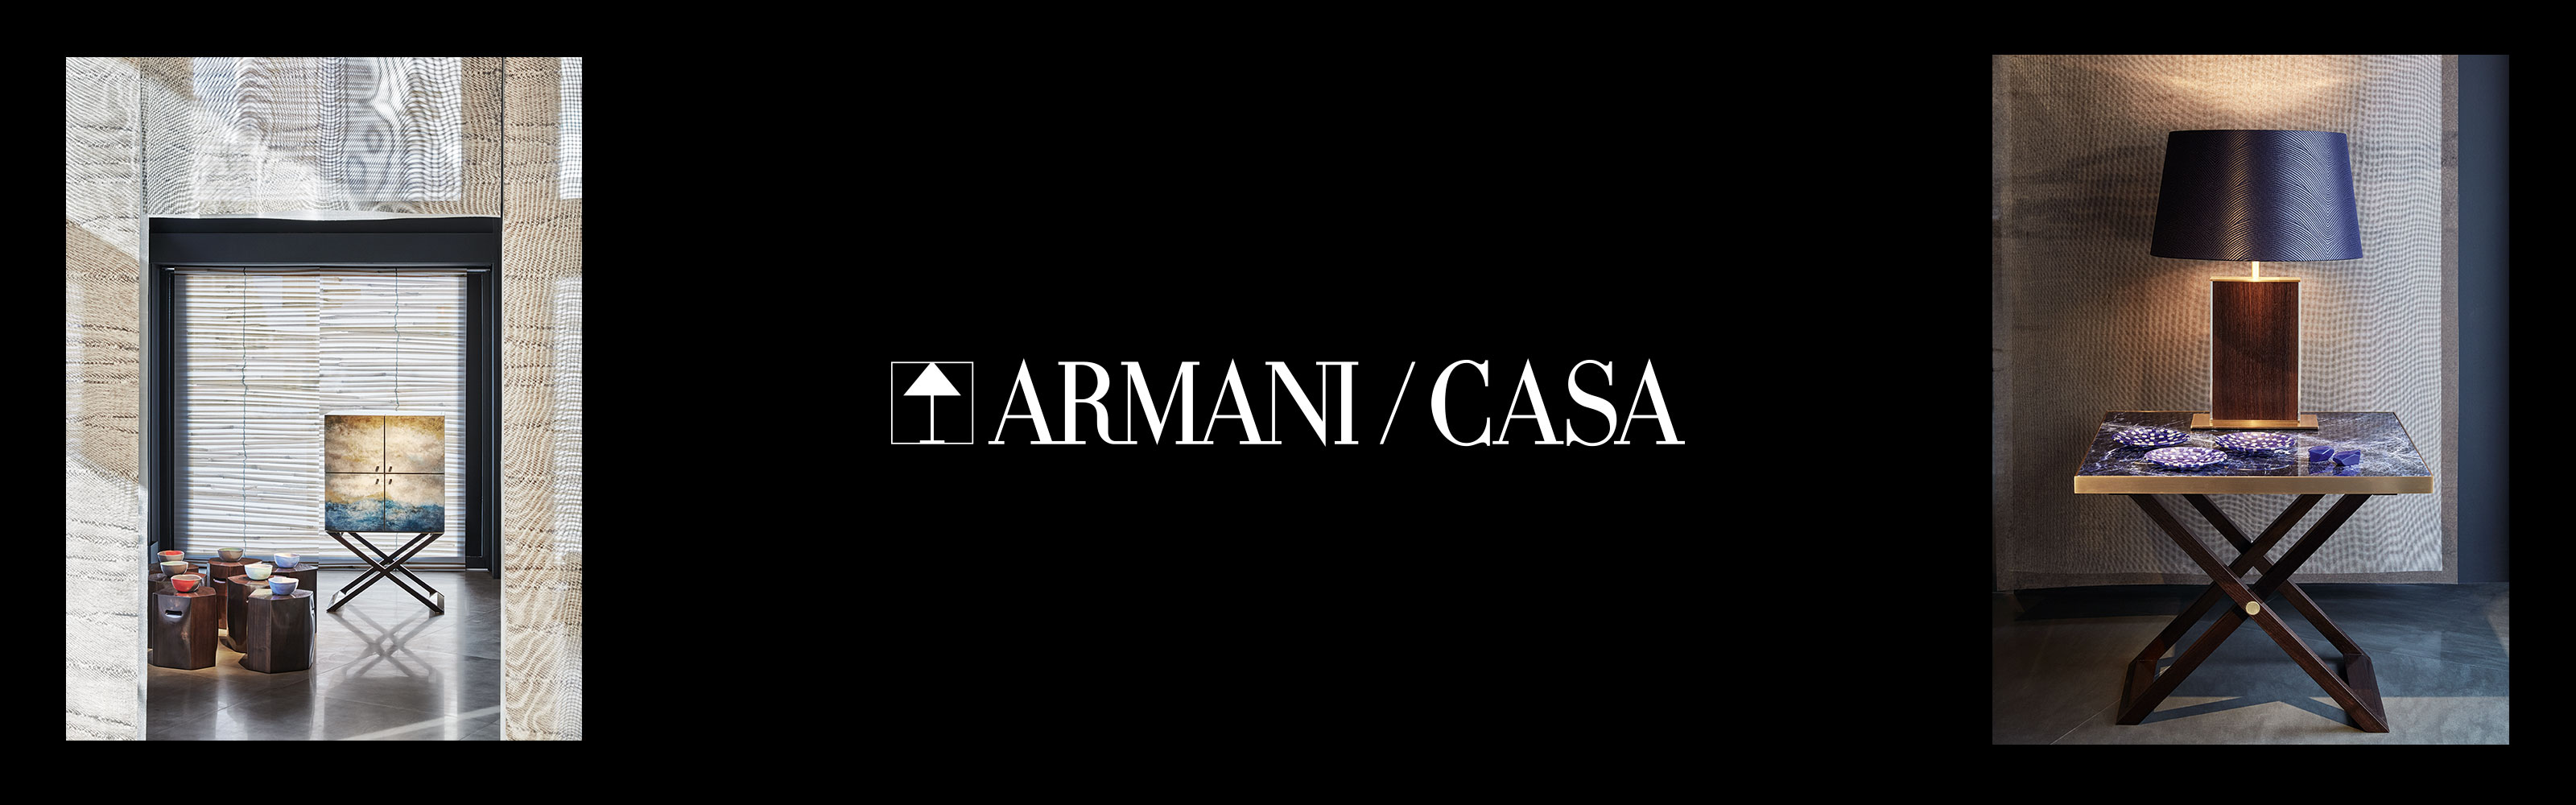 Armani Casa Pacific Design Center